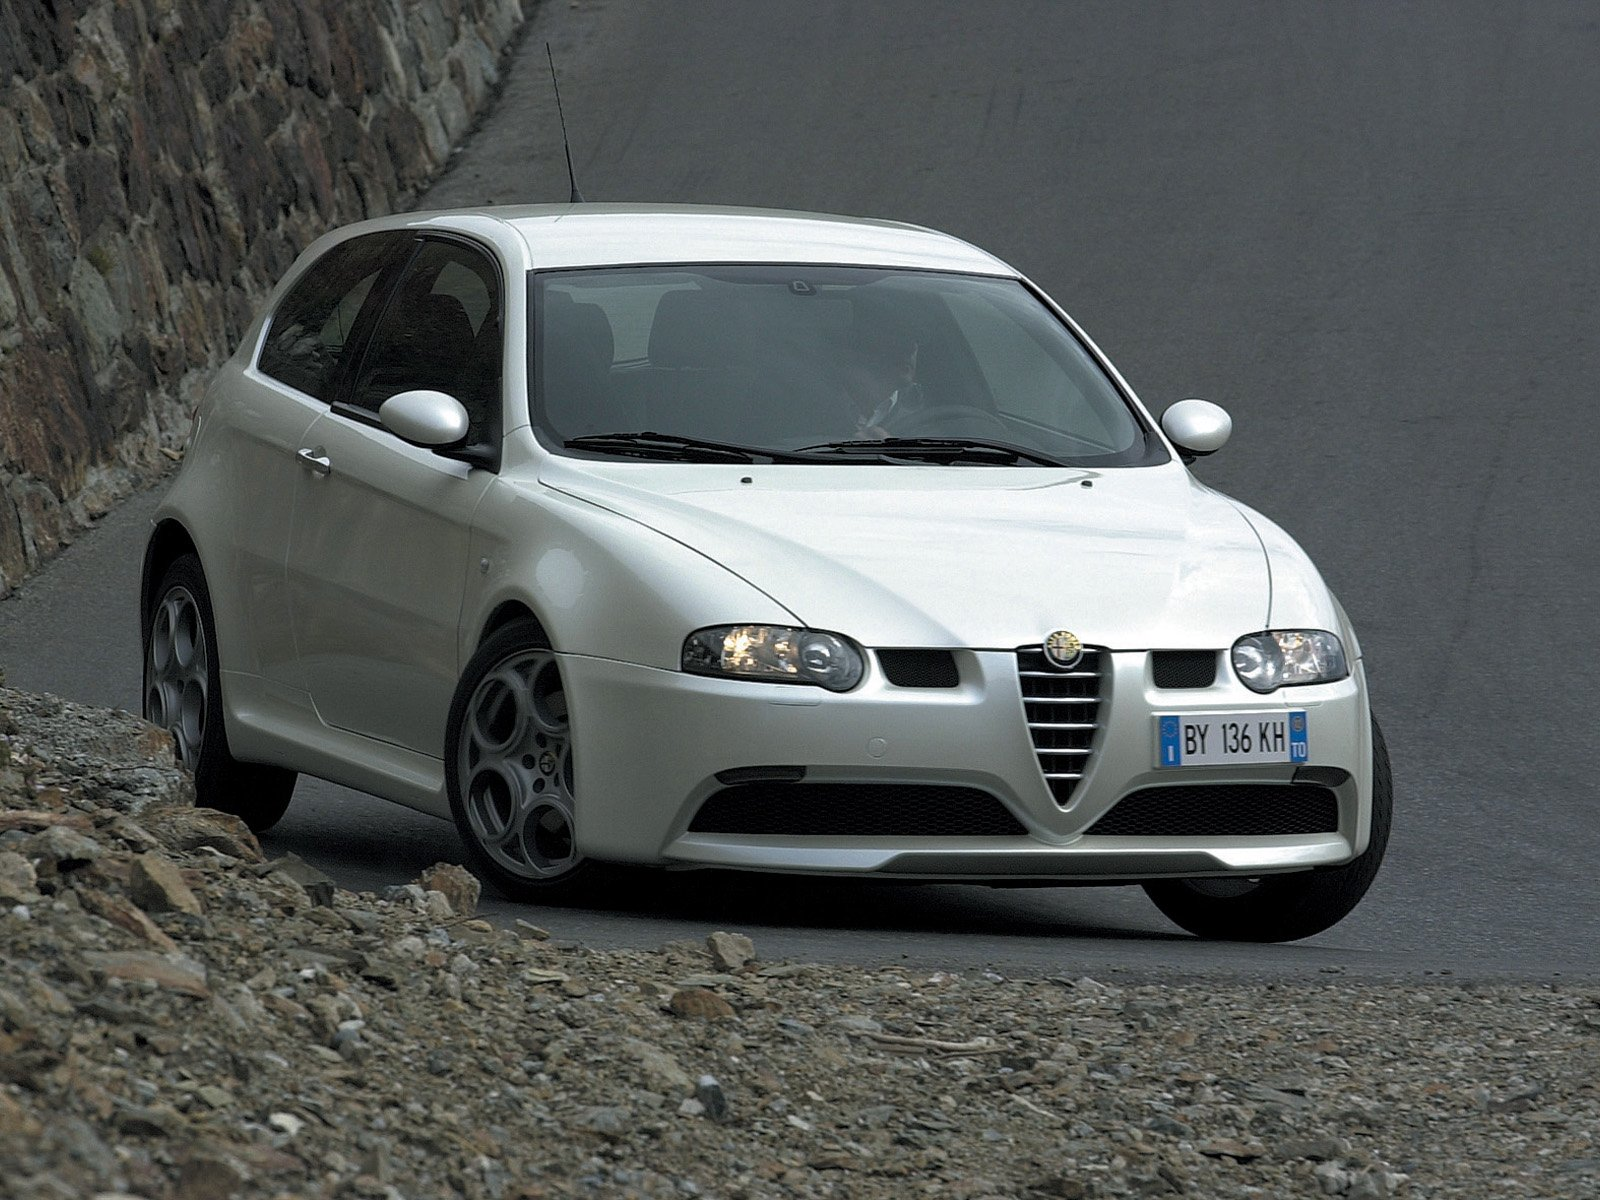 Alfa Romeo 147 Gta Picture 9109 Alfa Romeo Photo Gallery